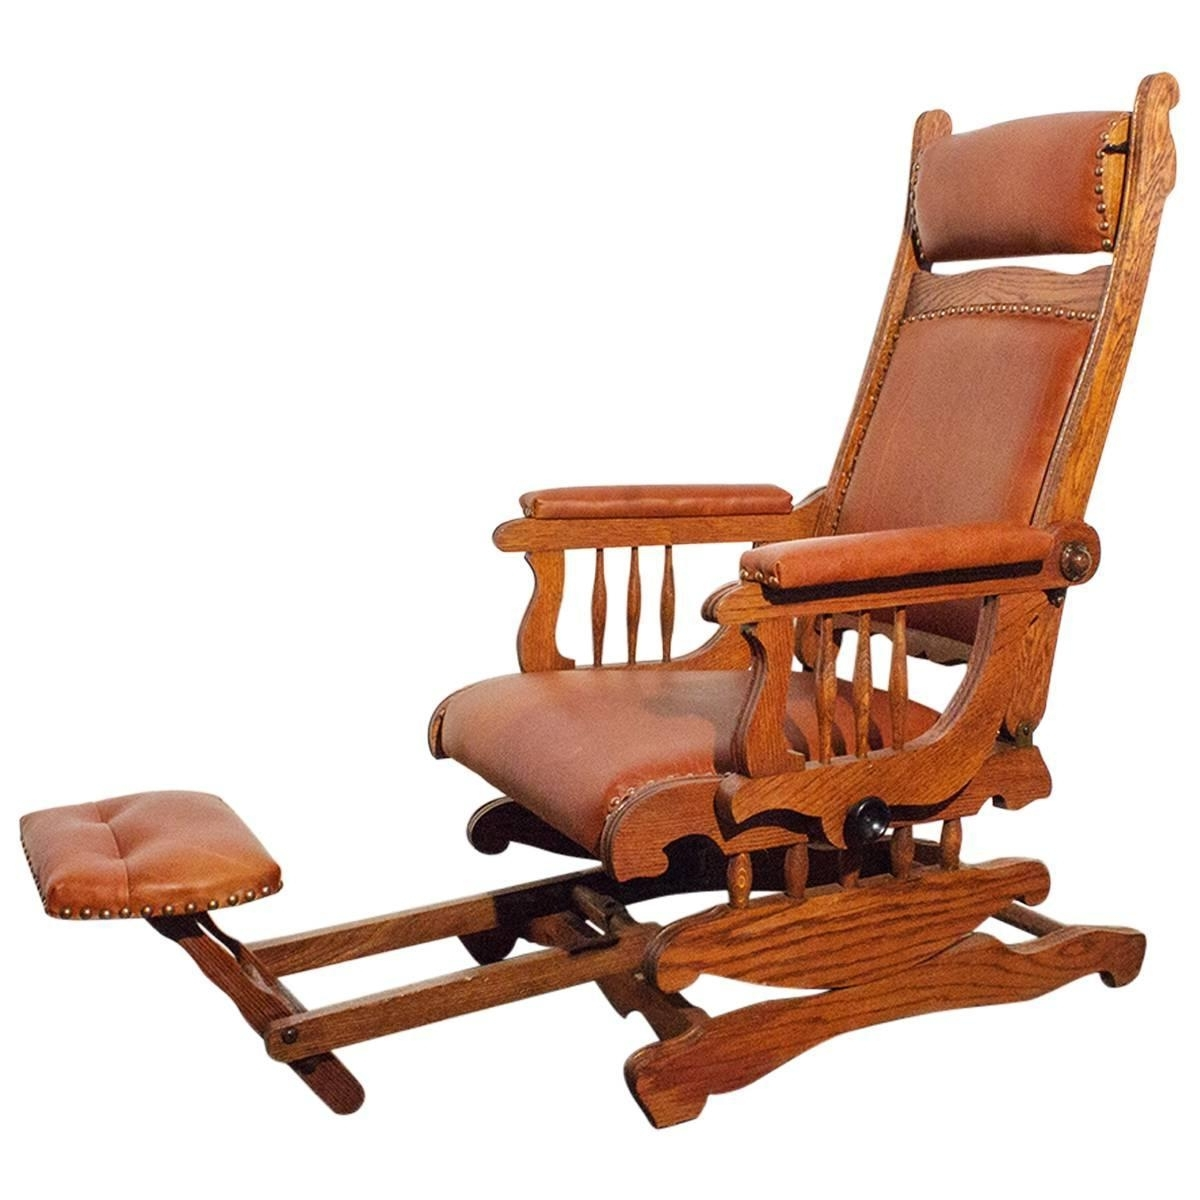 Most Popular Victorian Platform Rocker With Foot Rest, Circa 1890 At 1stdibs Regarding Rocking Chairs With Footstool (View 6 of 20)